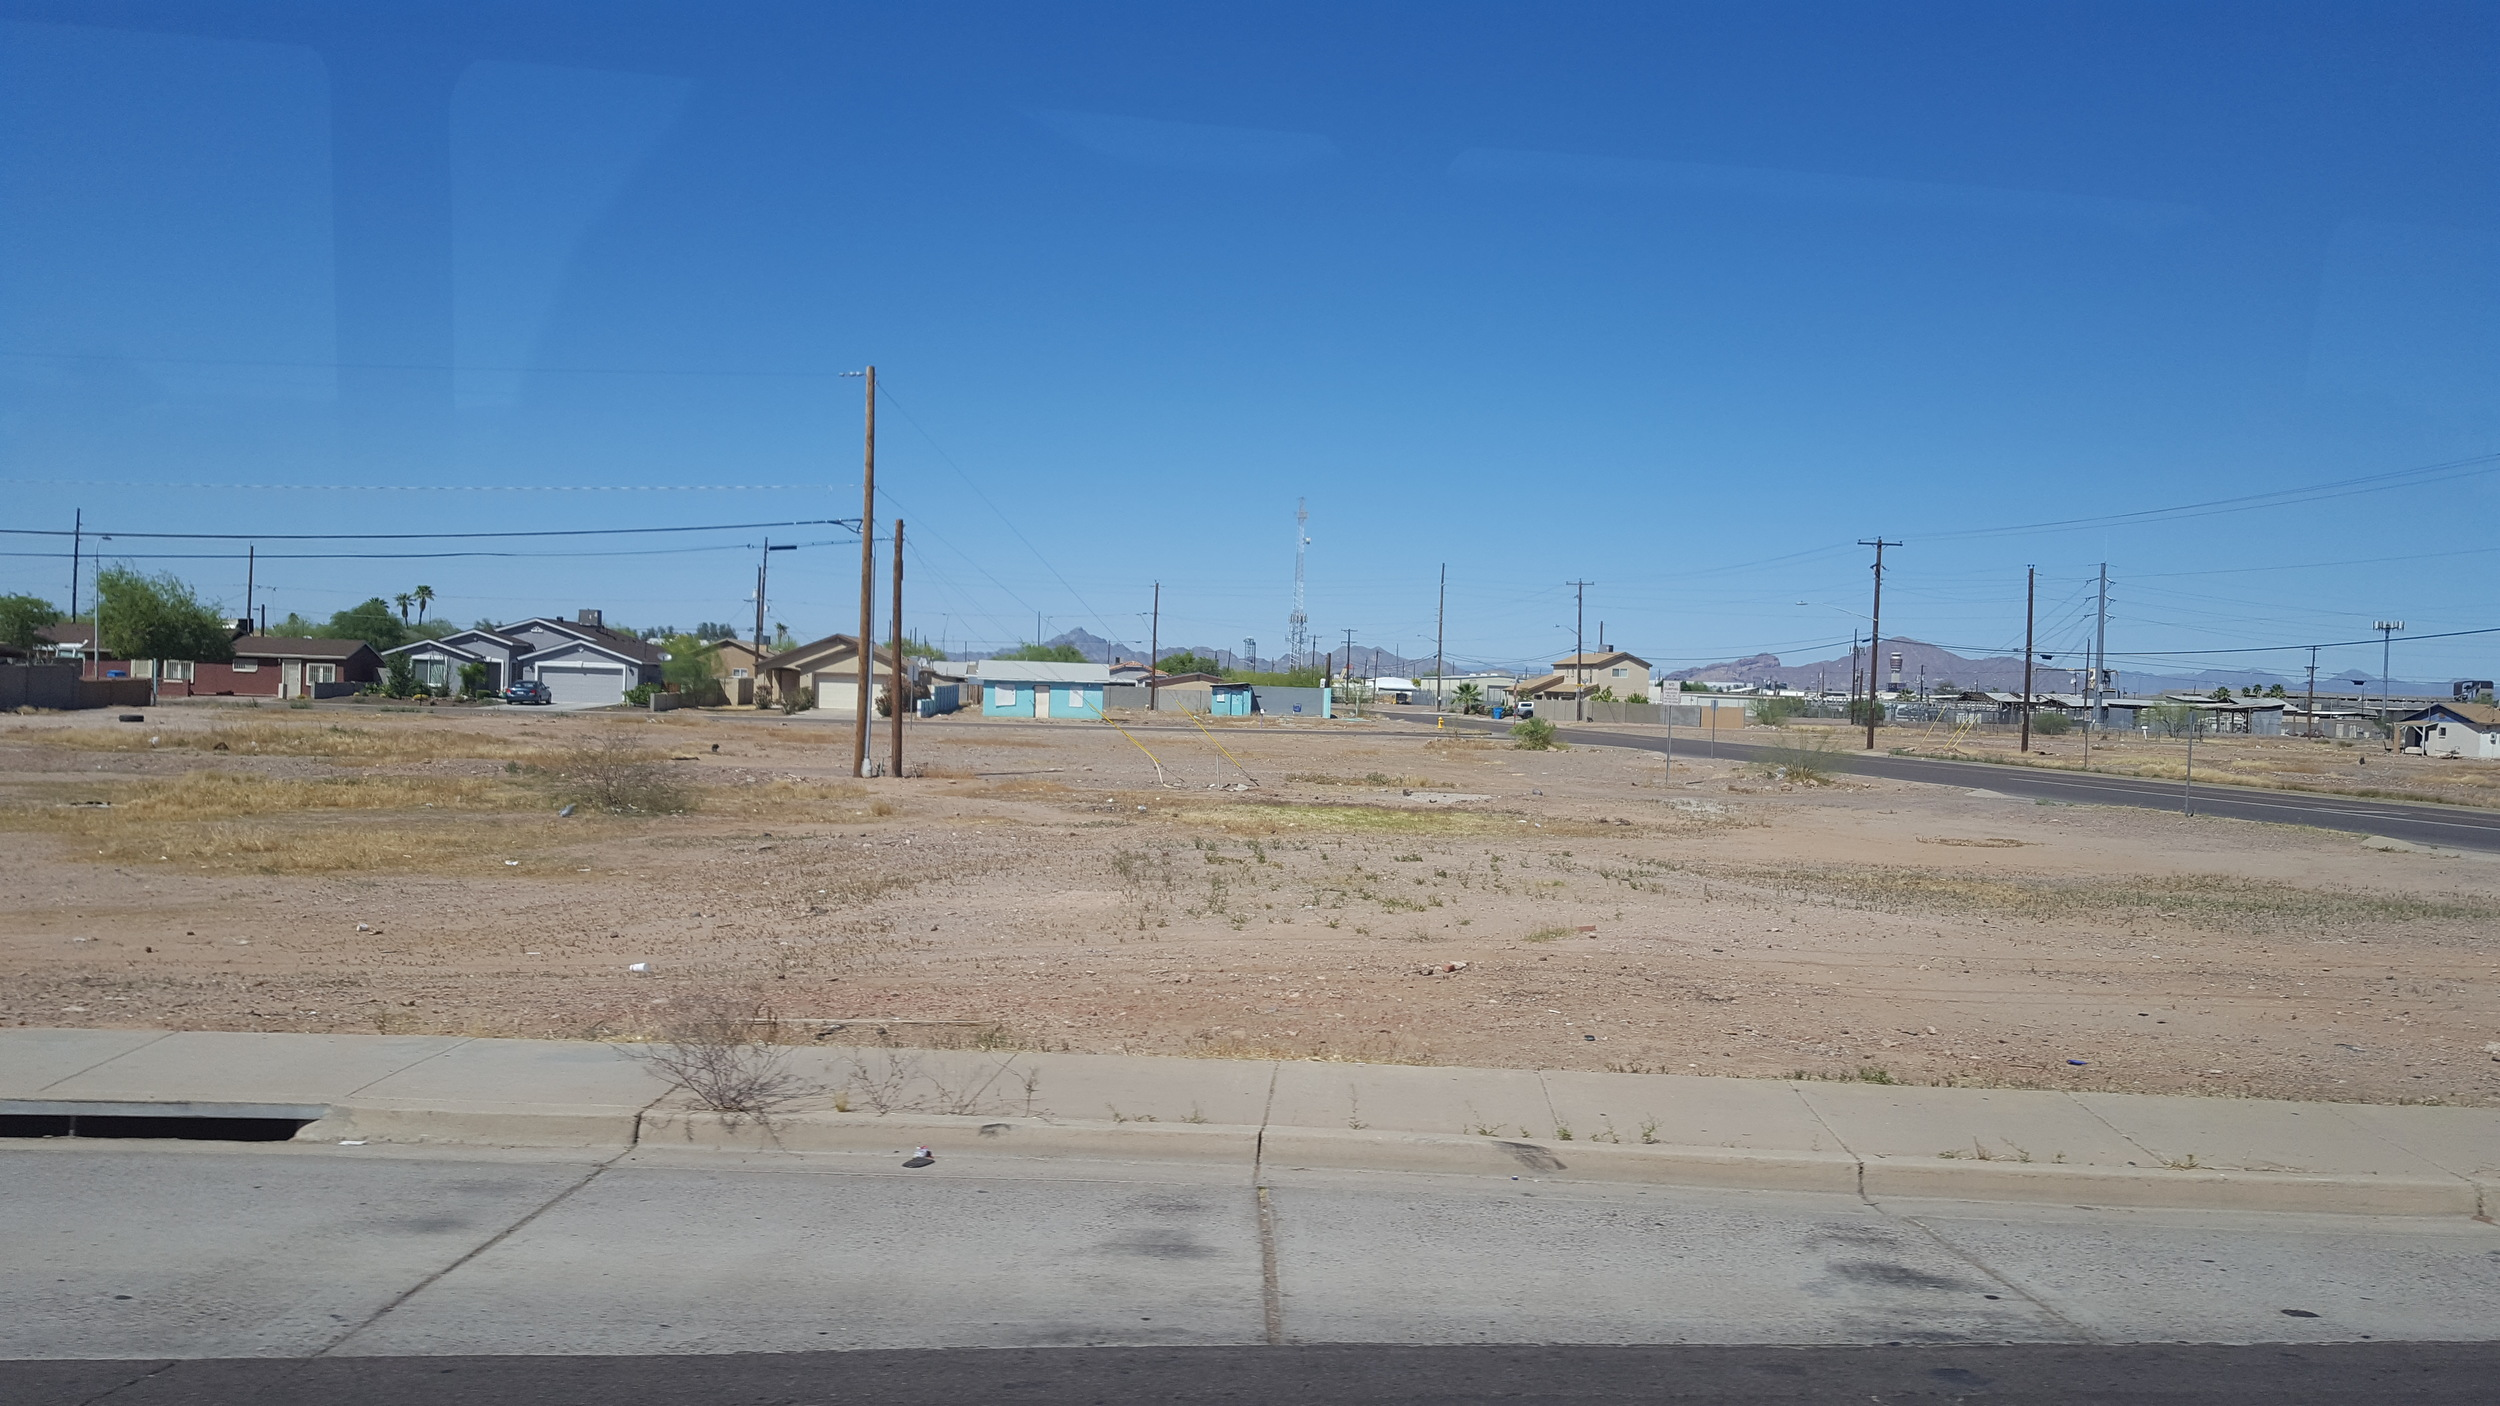 This brownfield site was contaminated by a South Phoenix hazmat fire several years ago. The neighborhood continues to be plagued by hazmat fires adjacent to housing causing significant public health concerns and development challenges. (Photo: M. Zimmerman, April 2016)